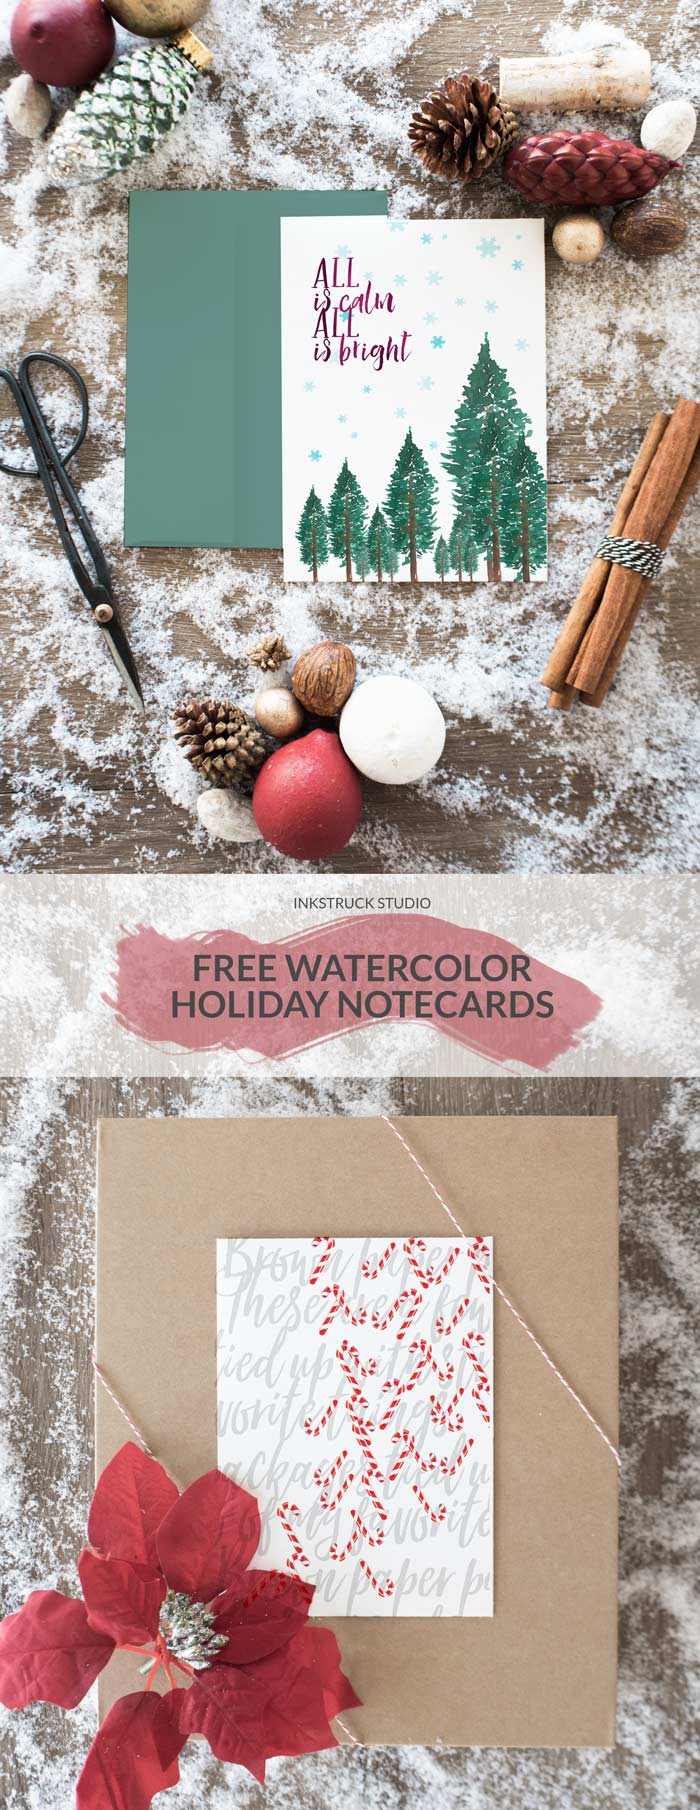 FREE WATERCOLOR HOLIDAY NOTECARDS - Inkstruck Studio